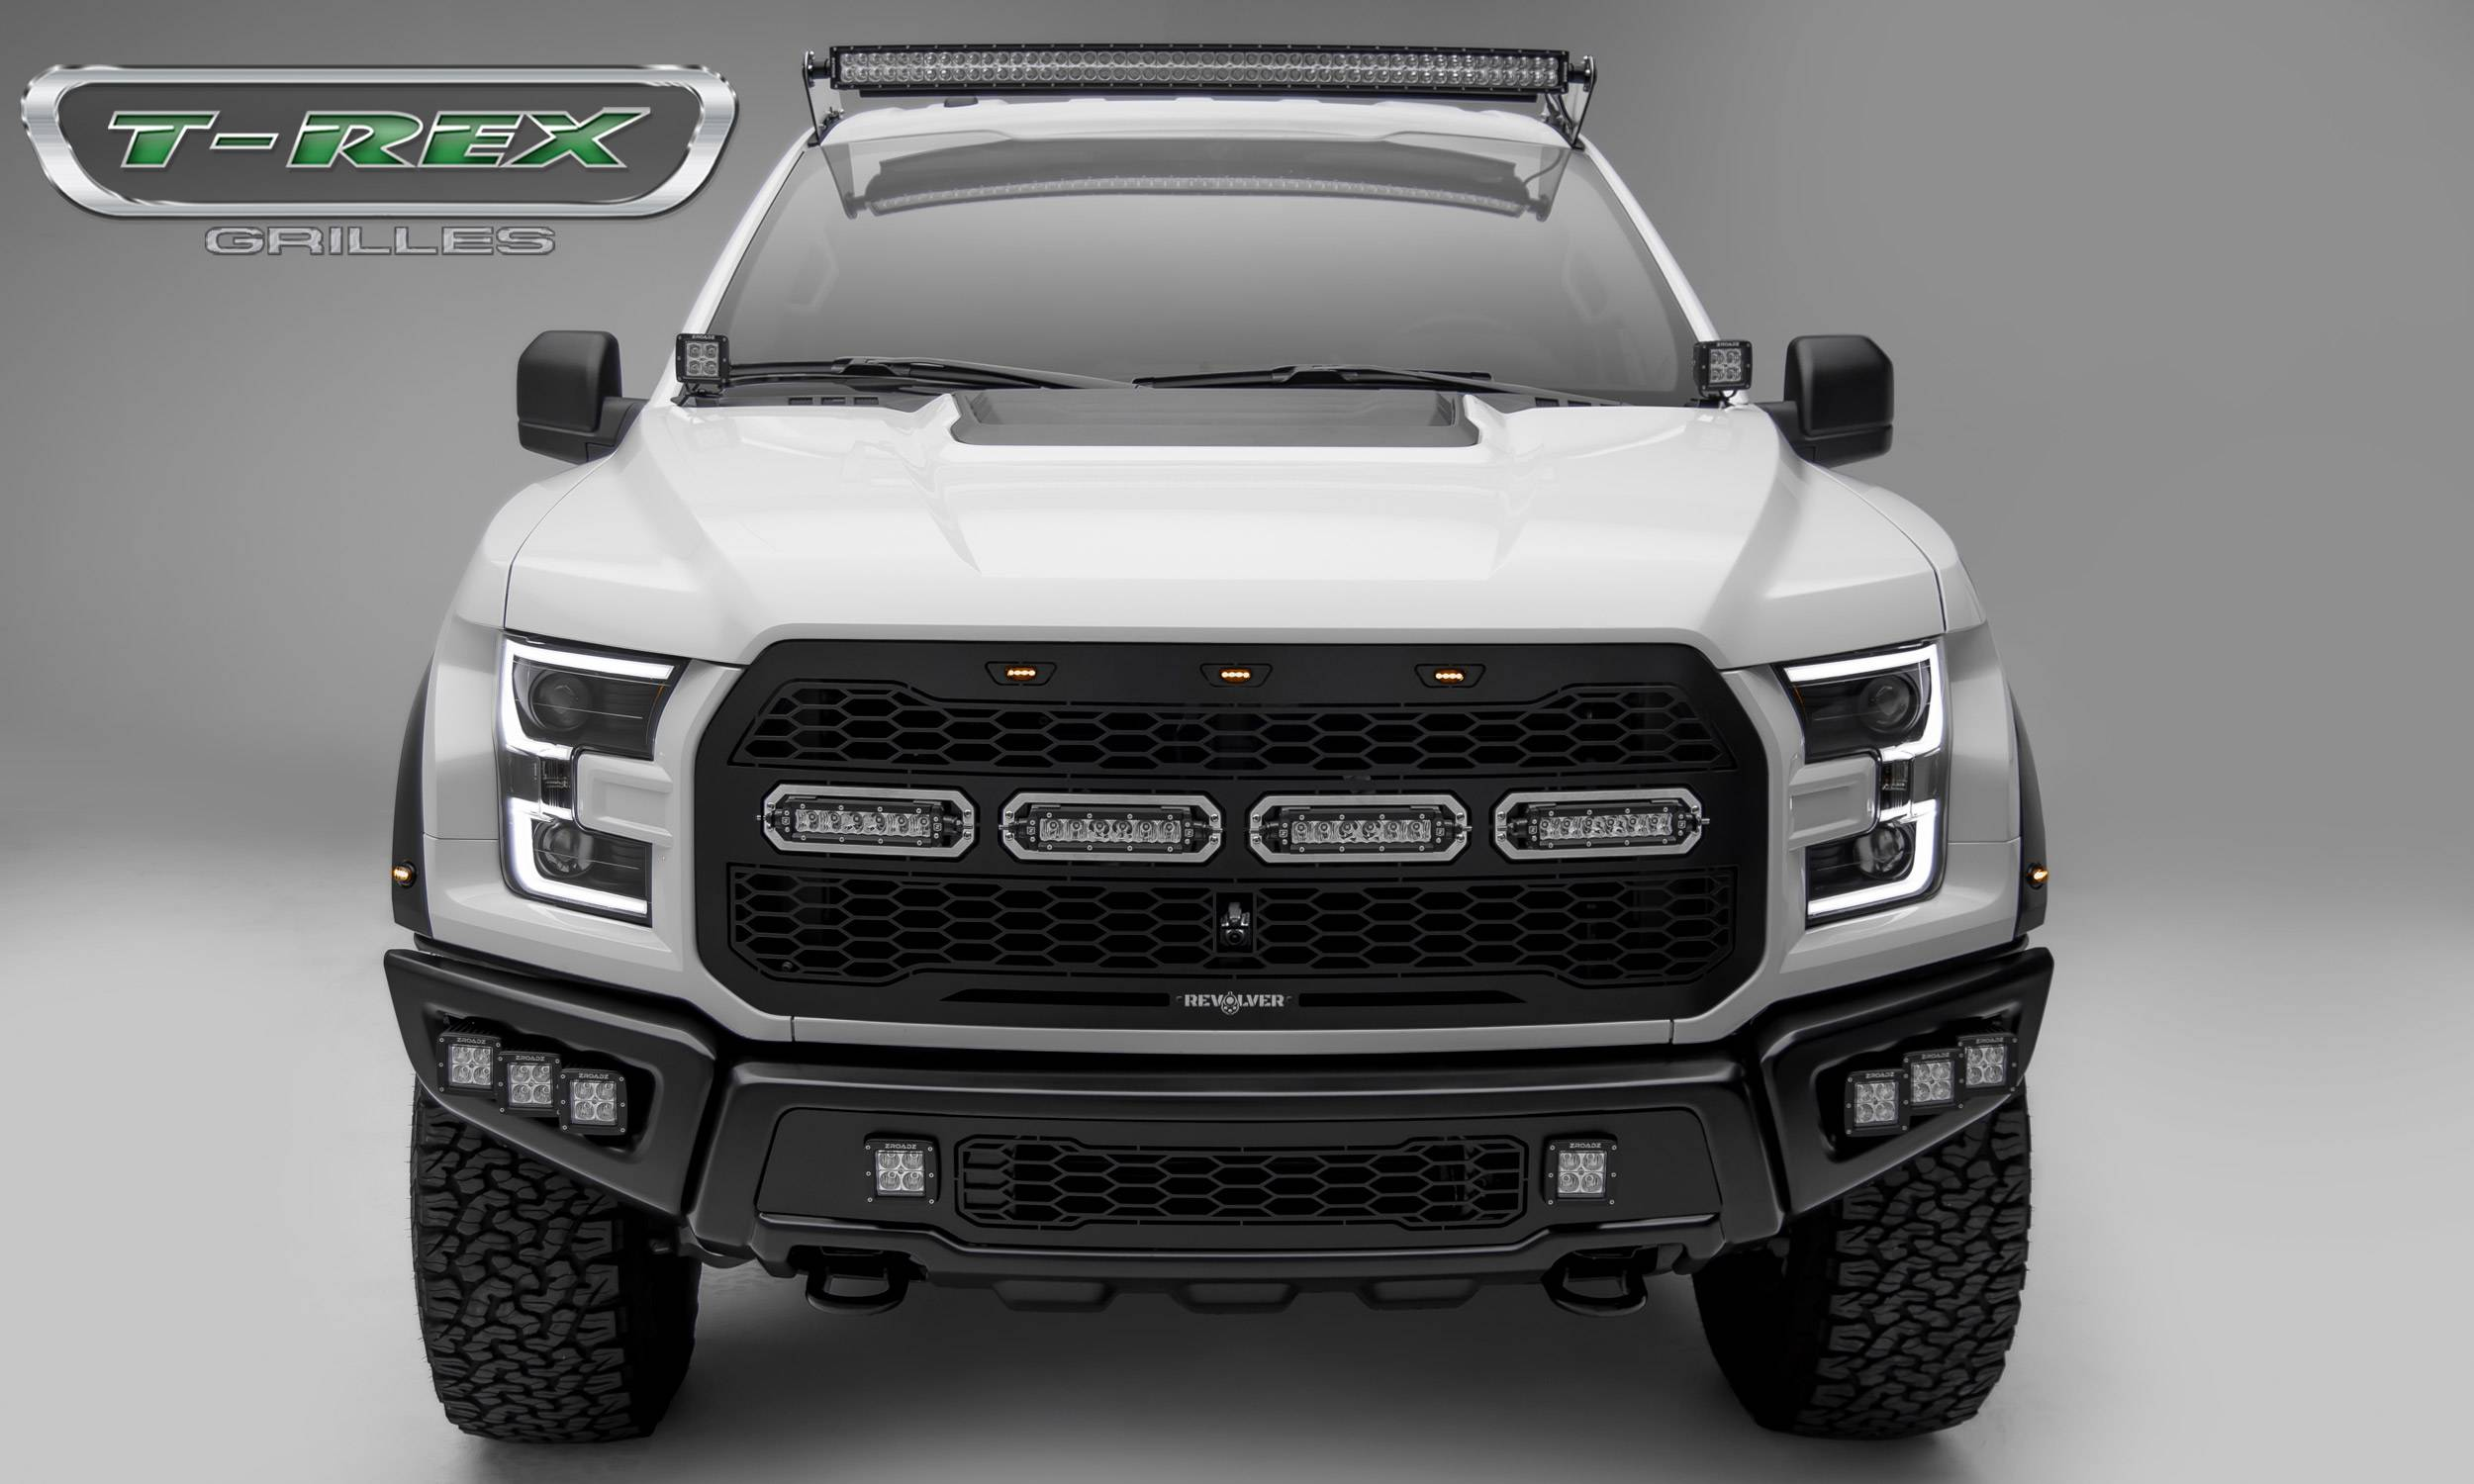 2017 2019 F 150 Raptor Svt Revolver Grille Black 1 Pc Replacement Chrome Studs Incl 4 6 Leds Fits Vehicles With Camera Pn 6515671